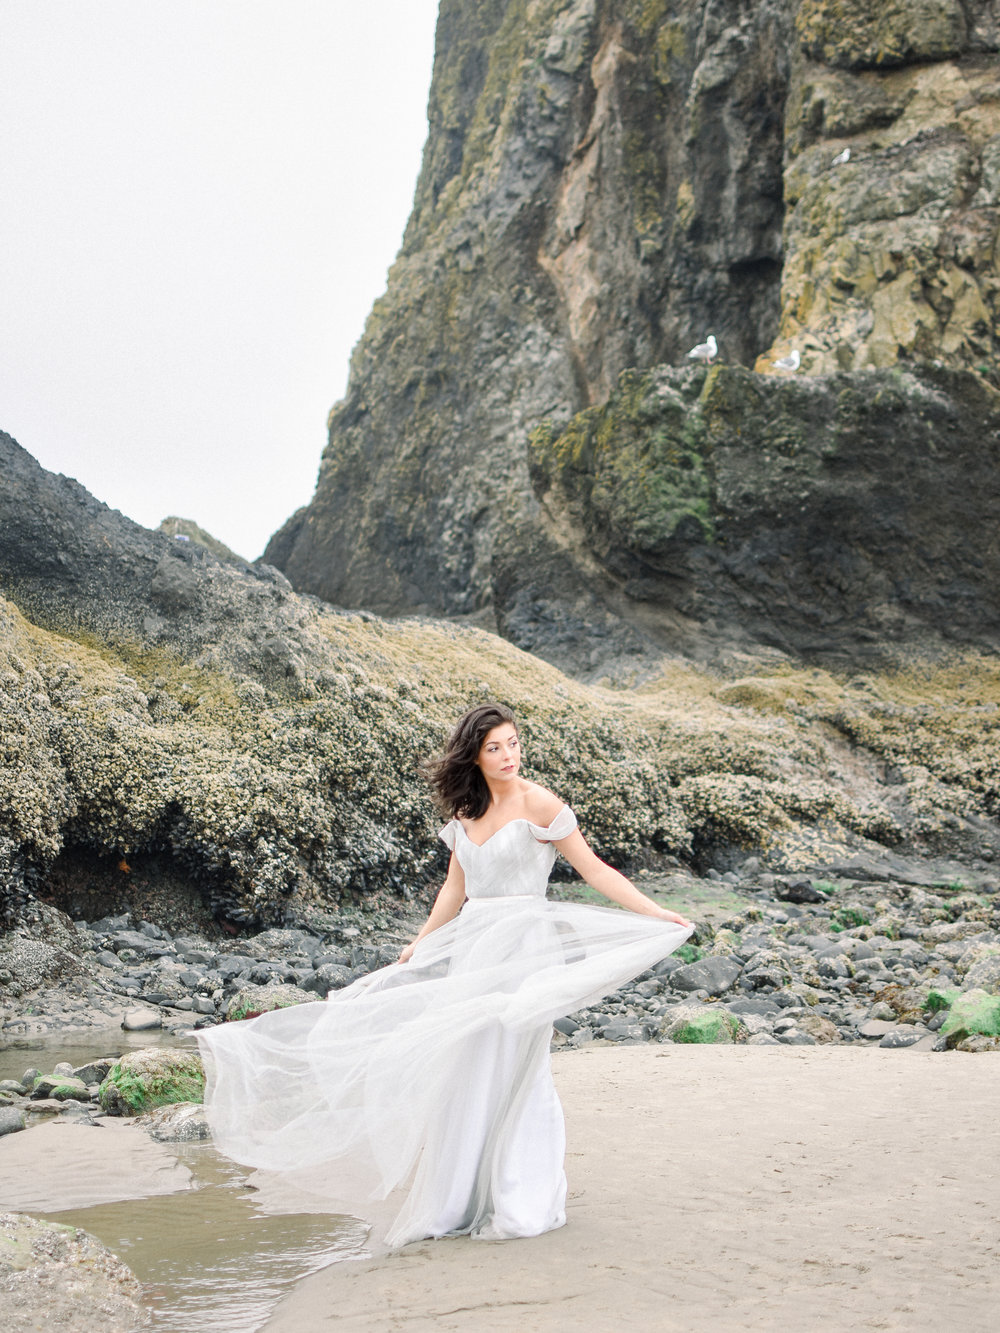 Jacqueline Anne Photography, Beach Wedding Session captured in Portland, Halifax Nova Scotia Wedding Photographer